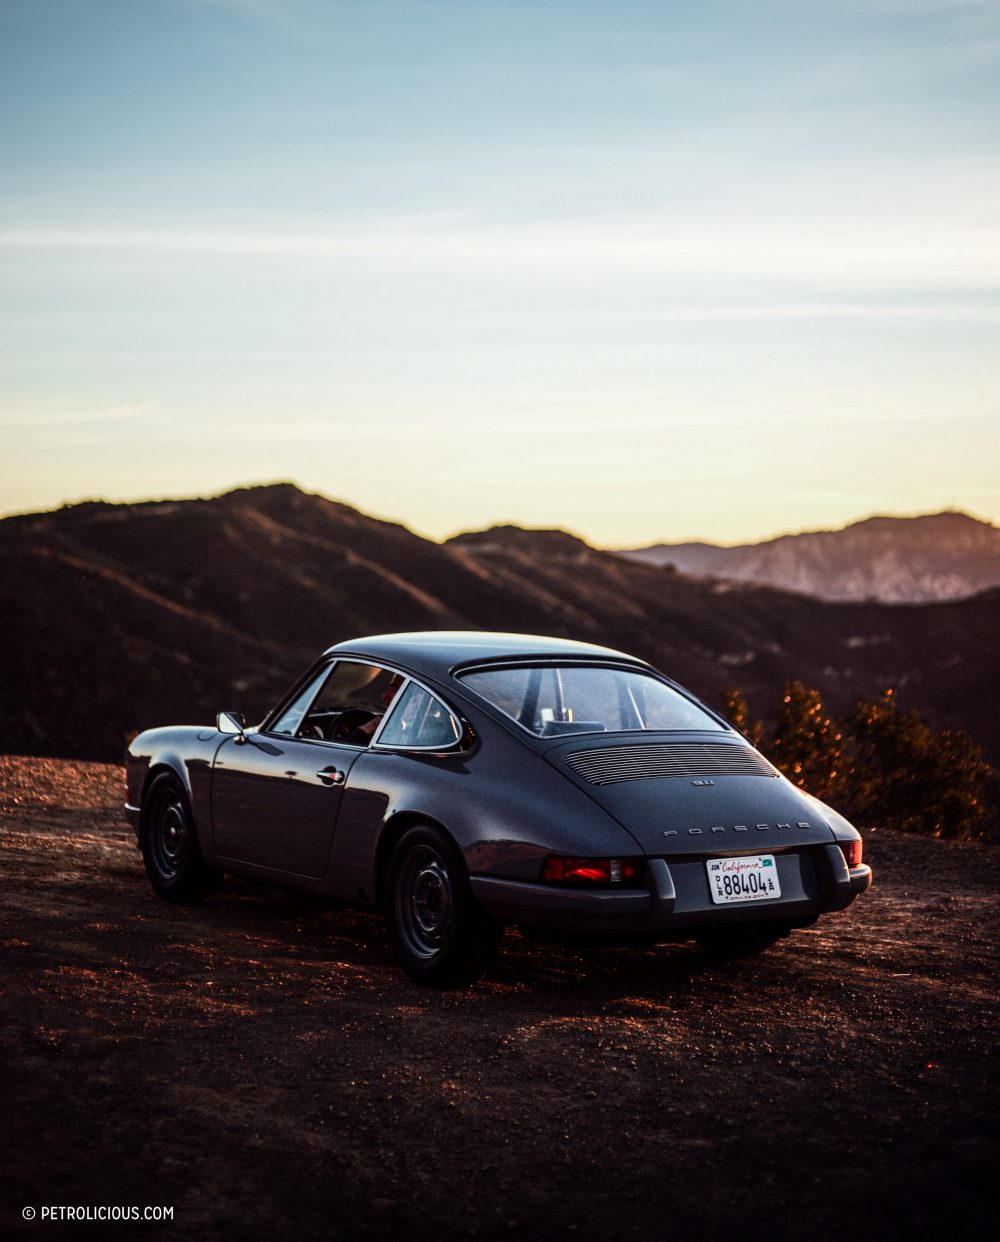 Workshop5001's Custom 911 Build Is An OCD Tribute To Porsche